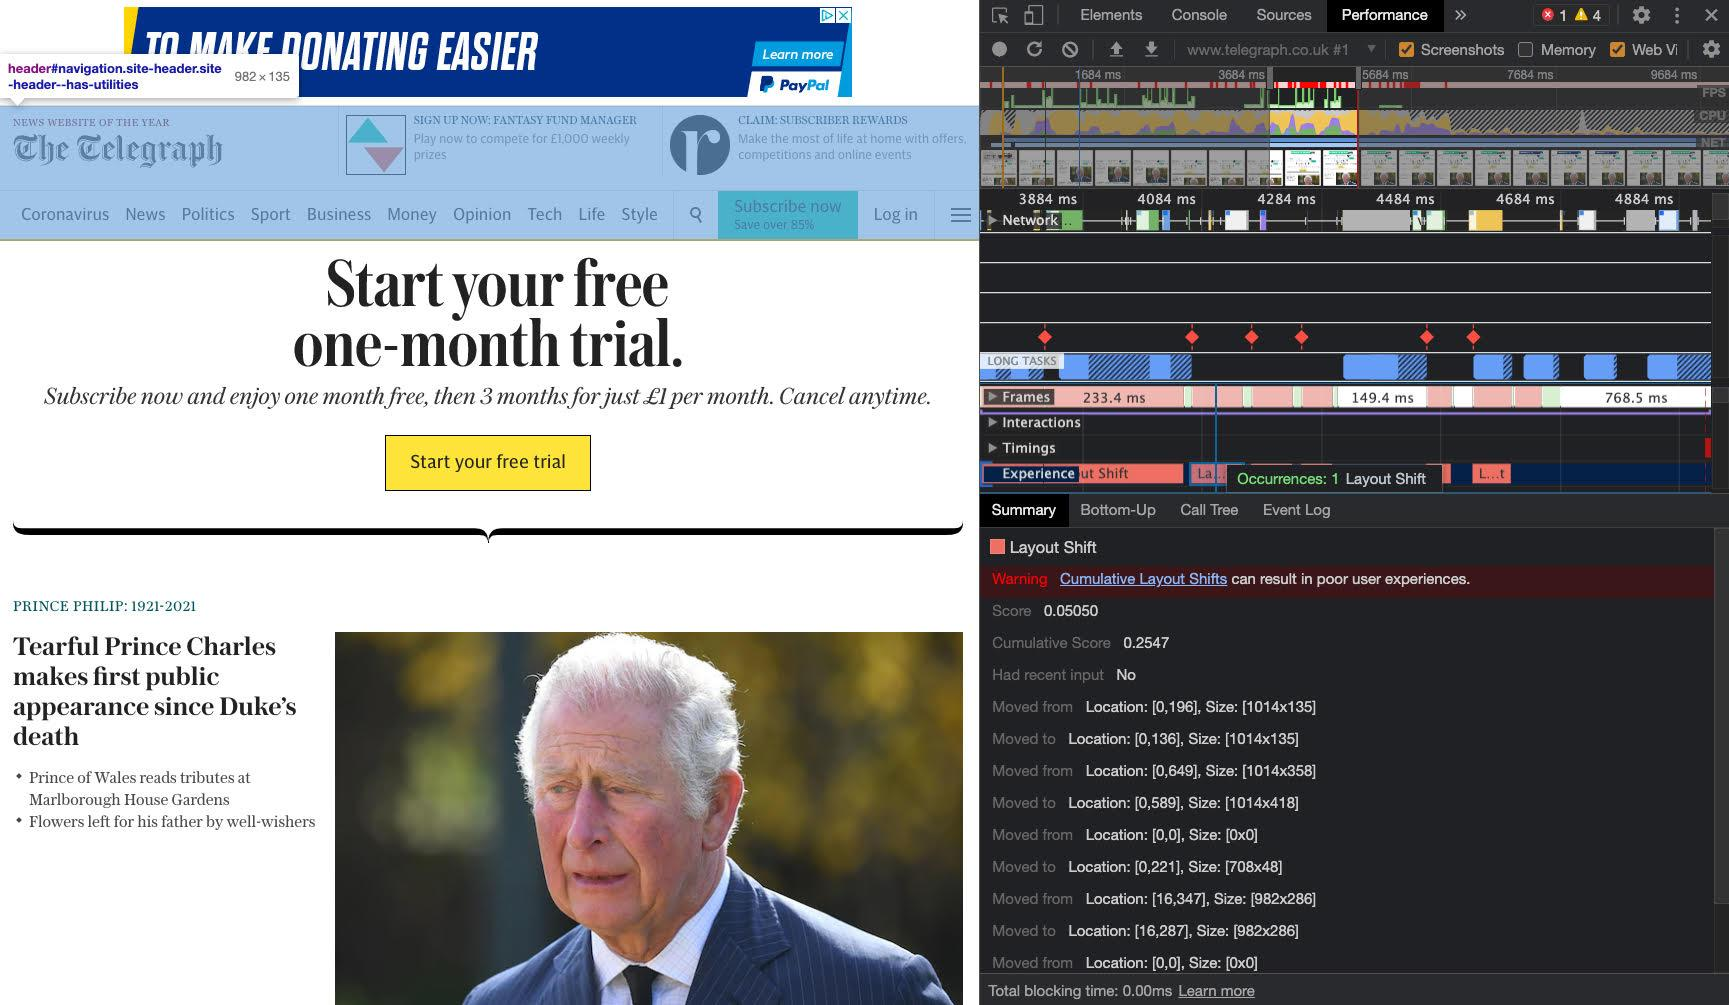 The front page of Telegraph with an ad in the header highlughted with a blue overlay.